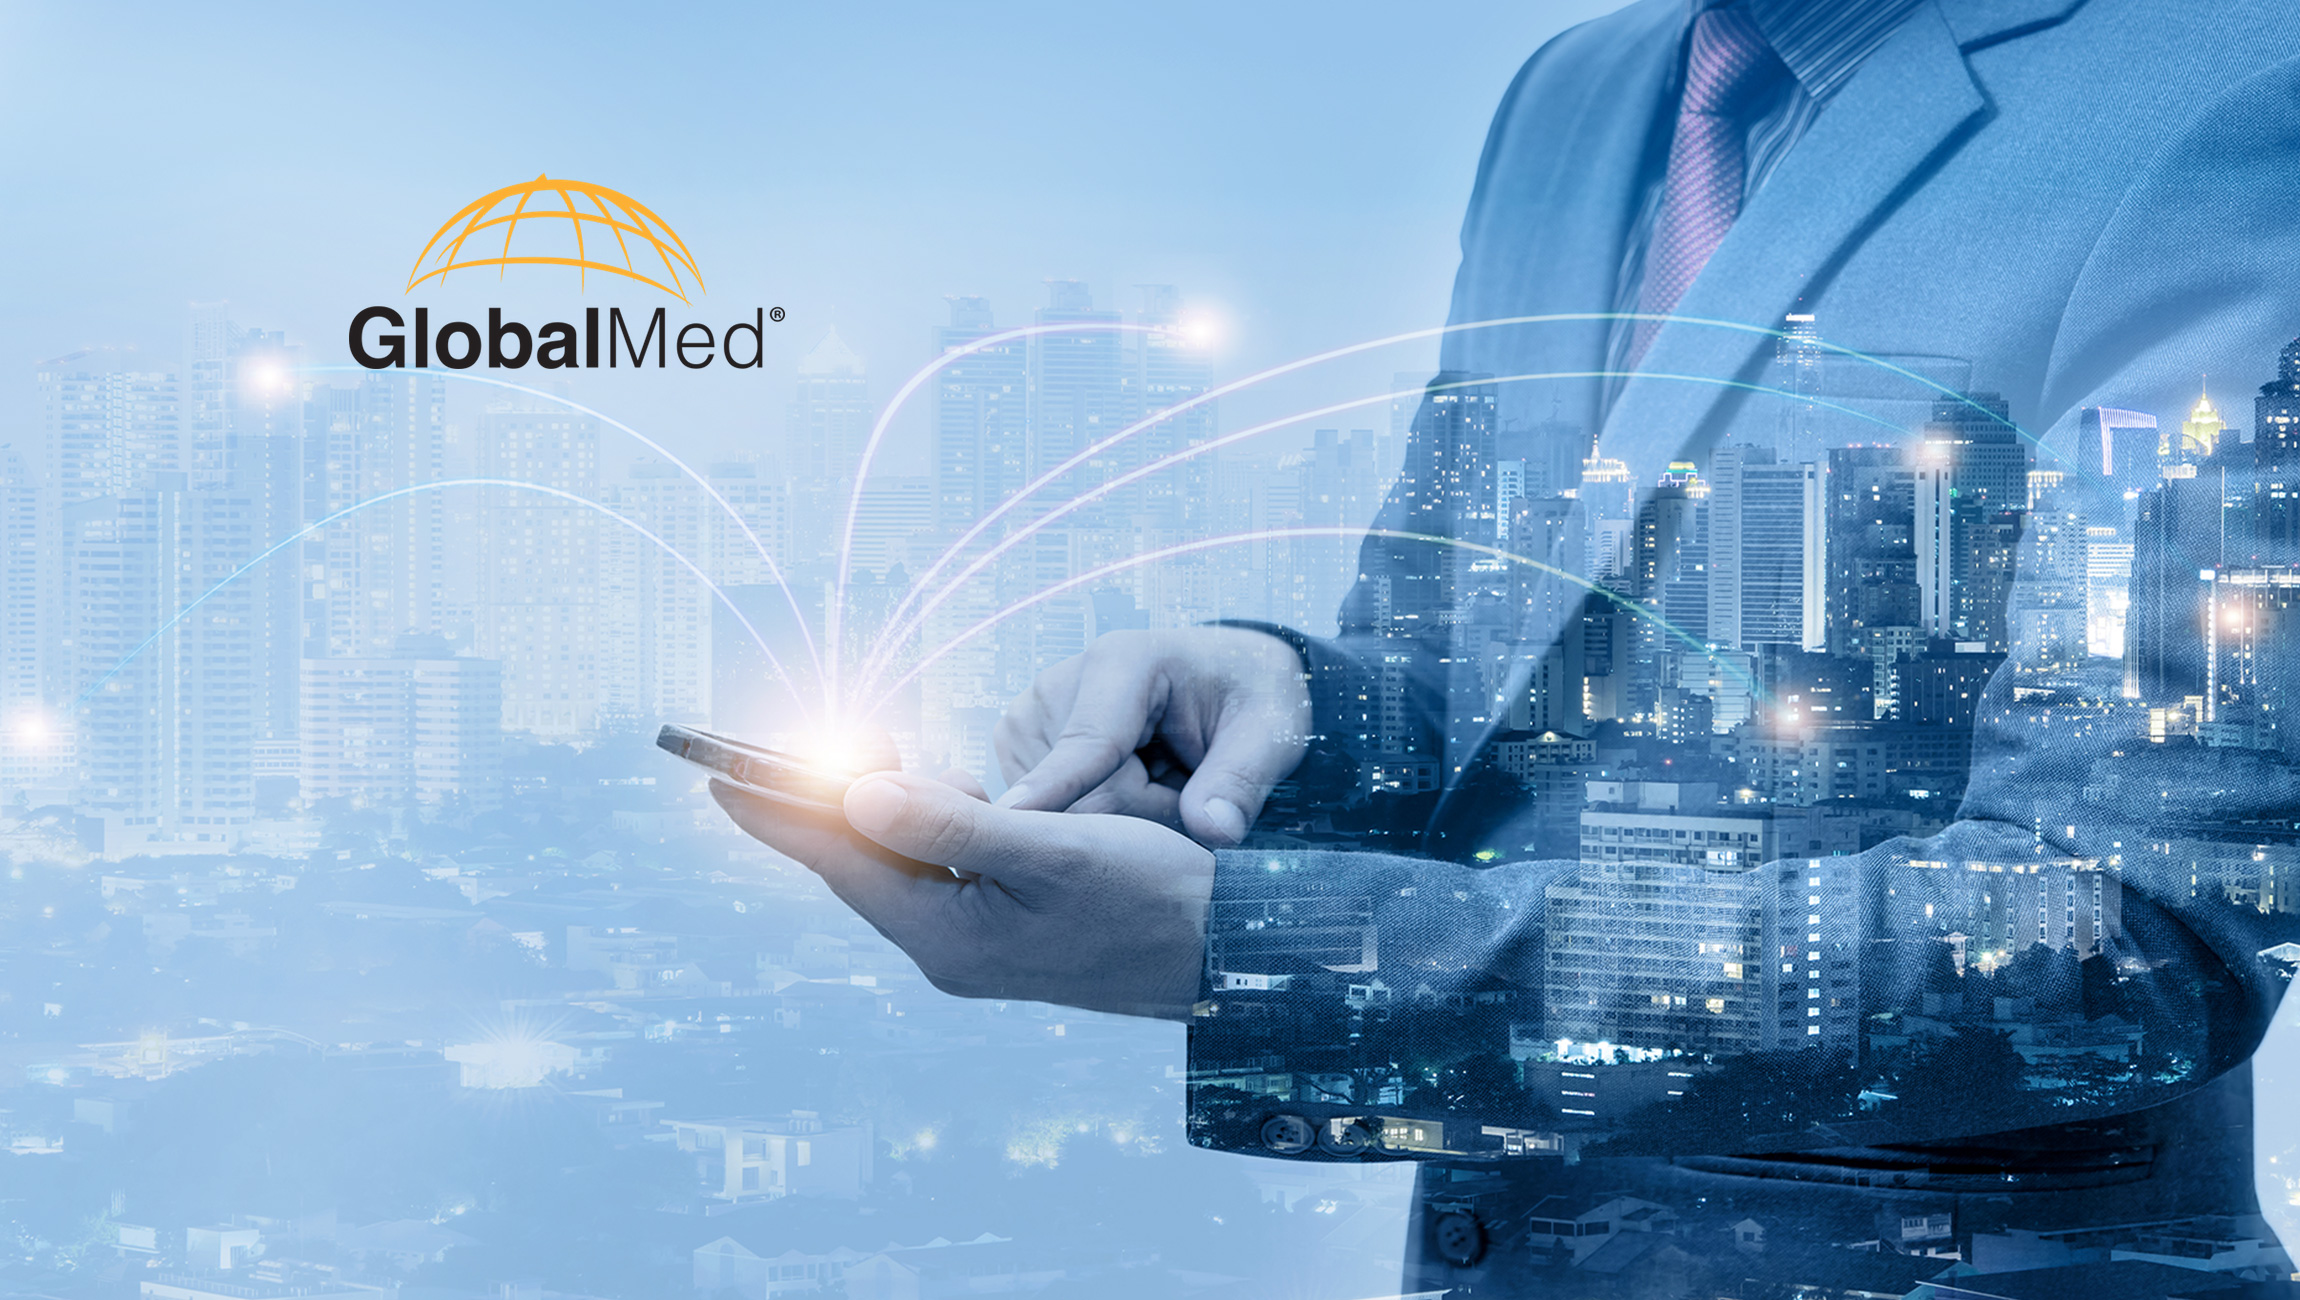 IOT, Cloud, Security Leader Scott Sullivan Joins GlobalMed as Chief Revenue Officer and SVP of Worldwide Sales